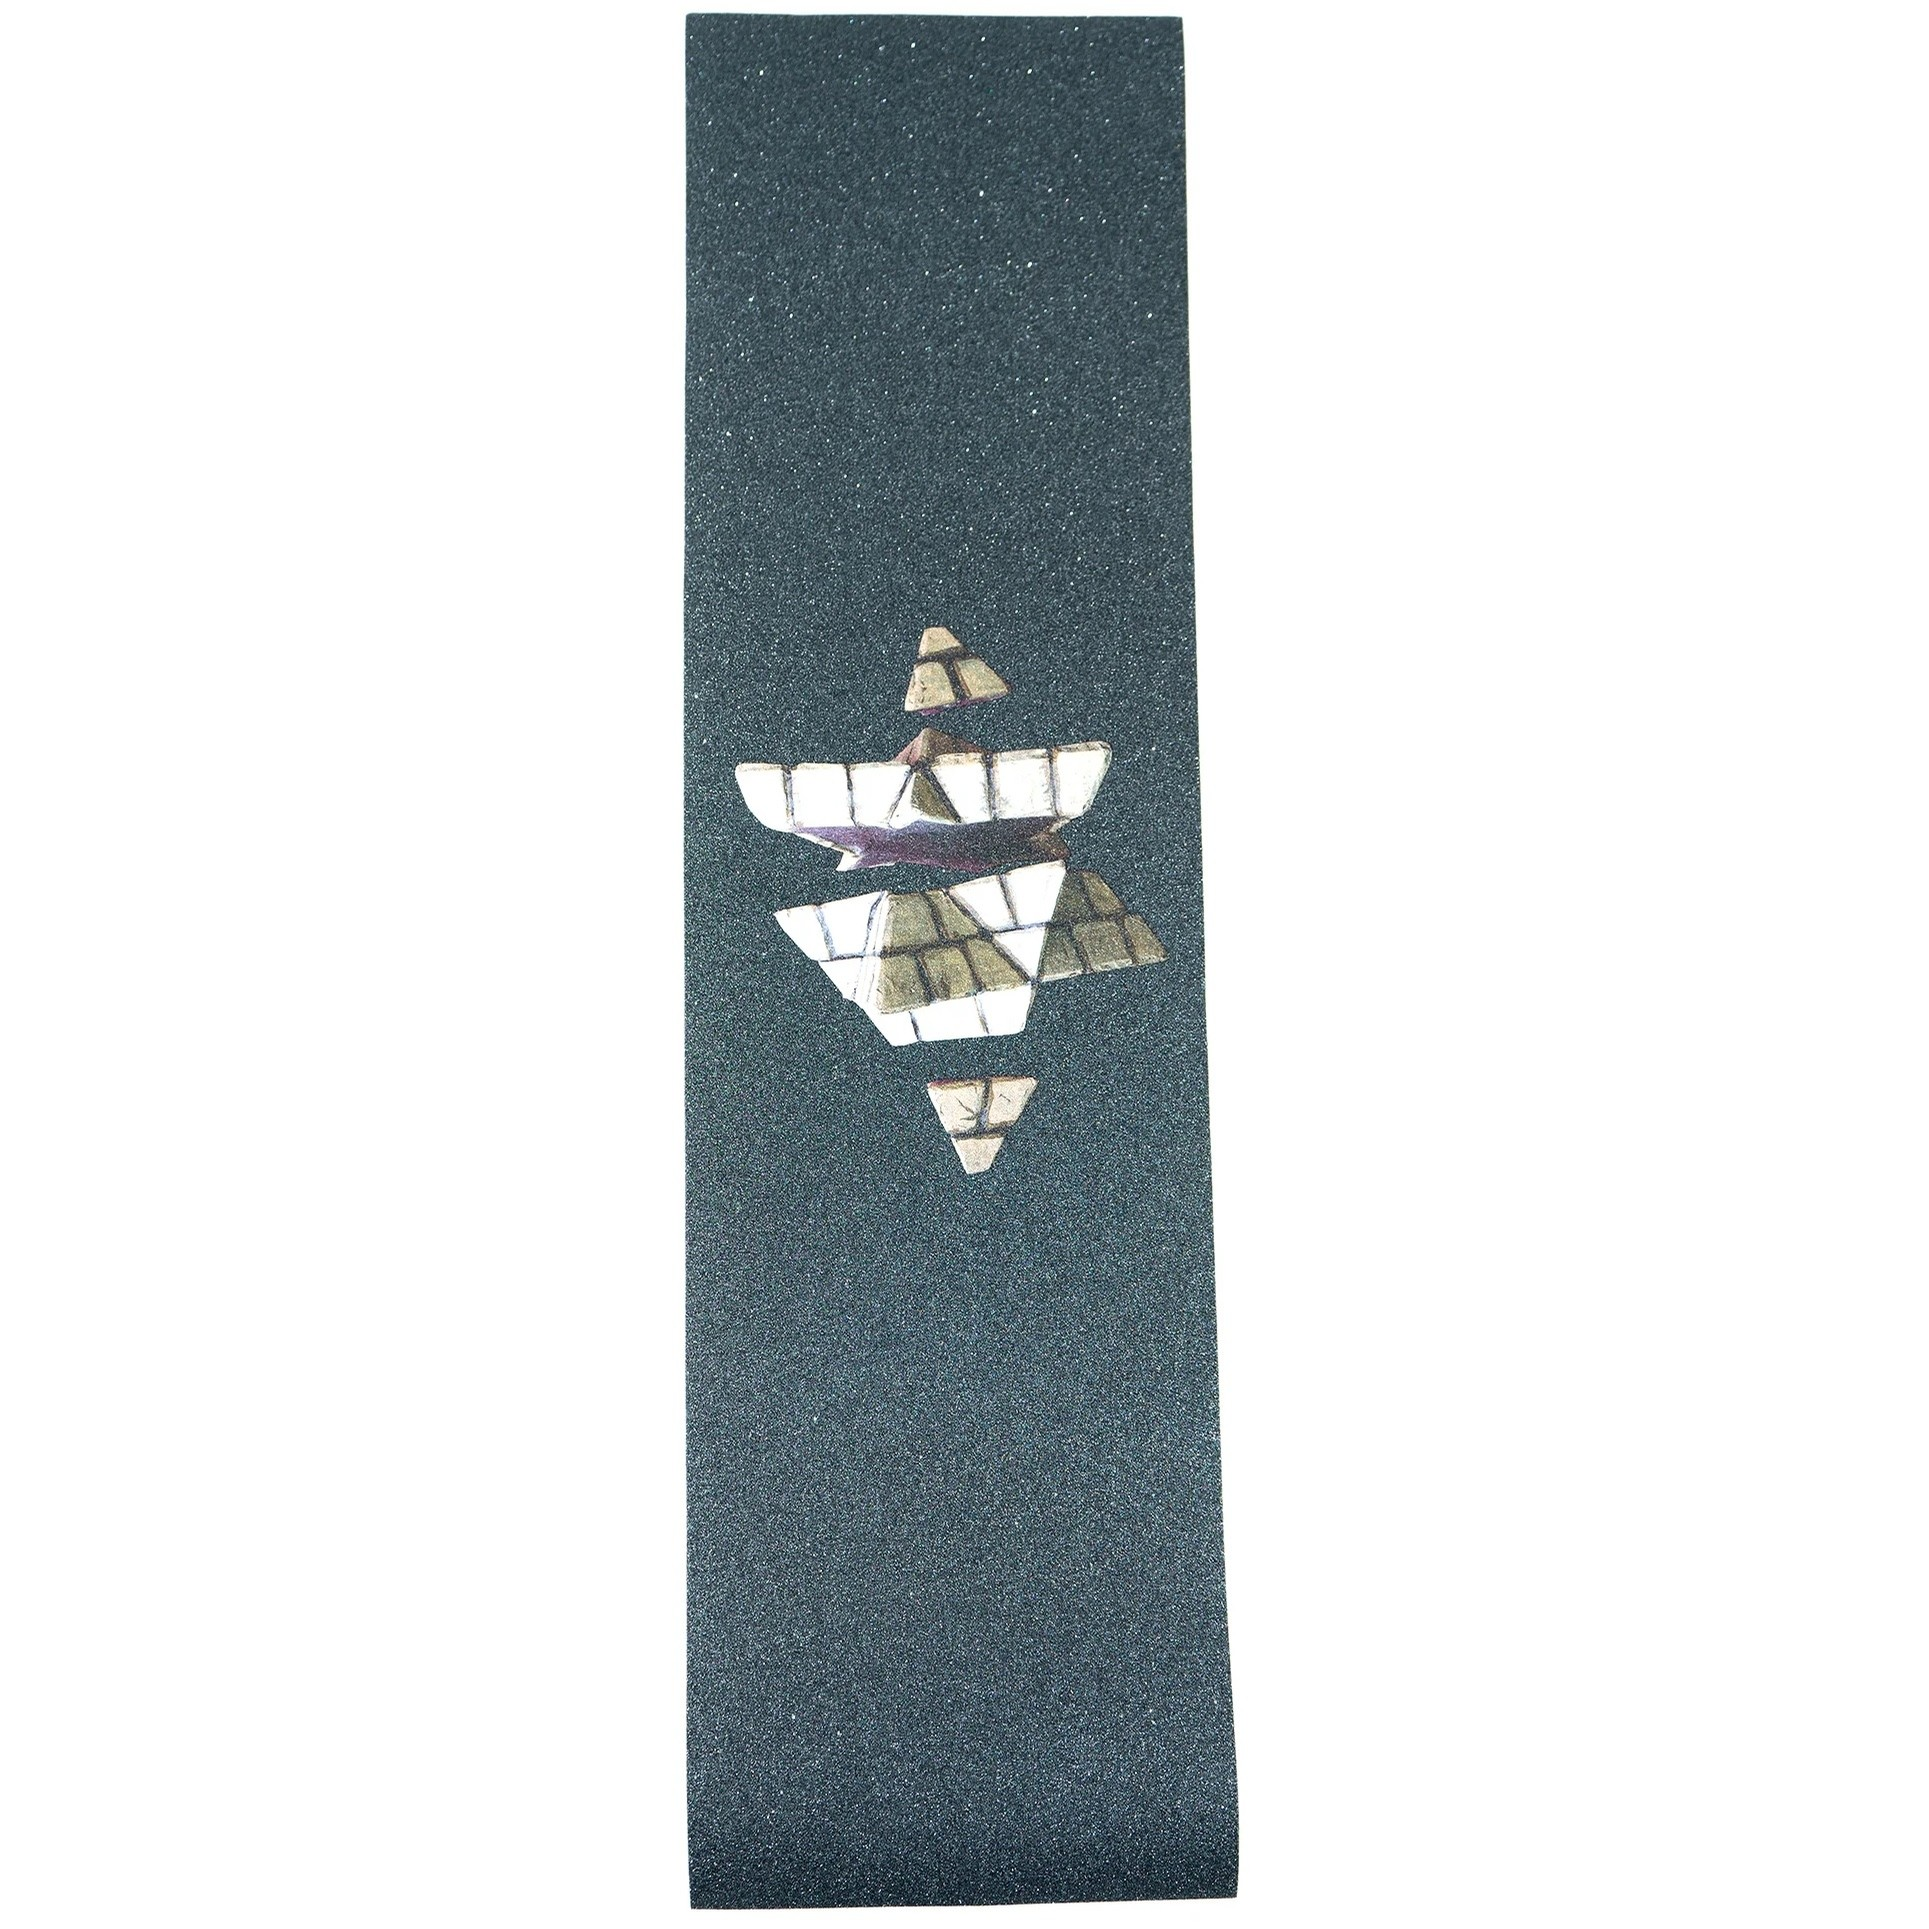 Levels Griptape (Black)